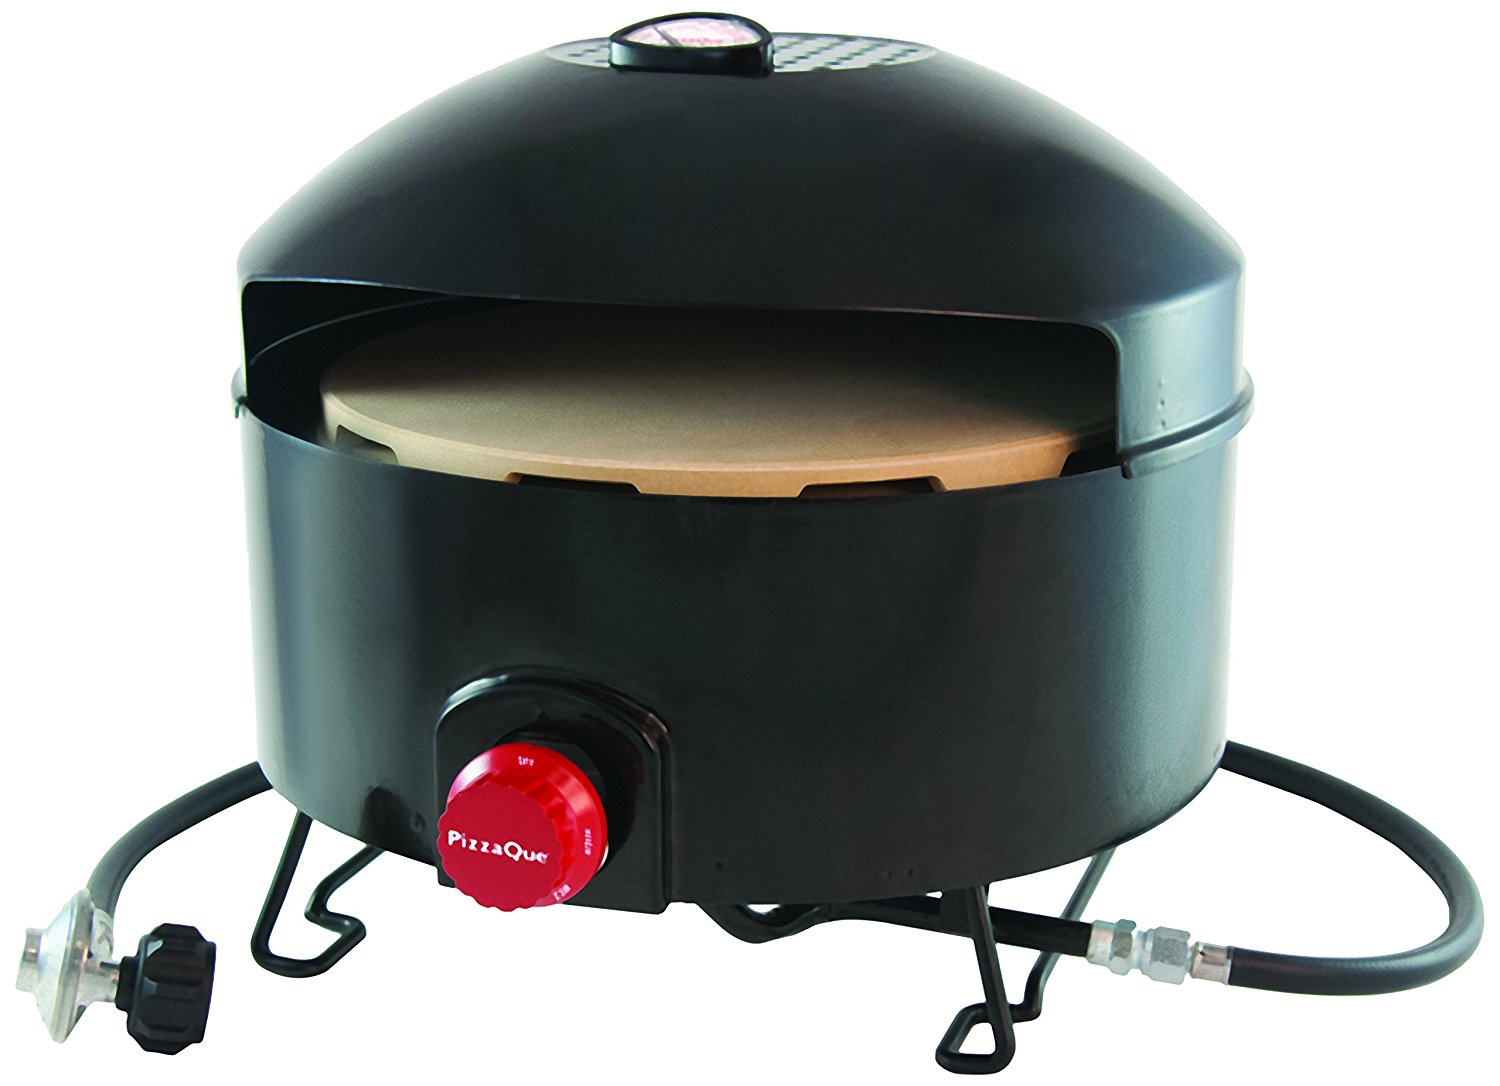 portable pizza maker